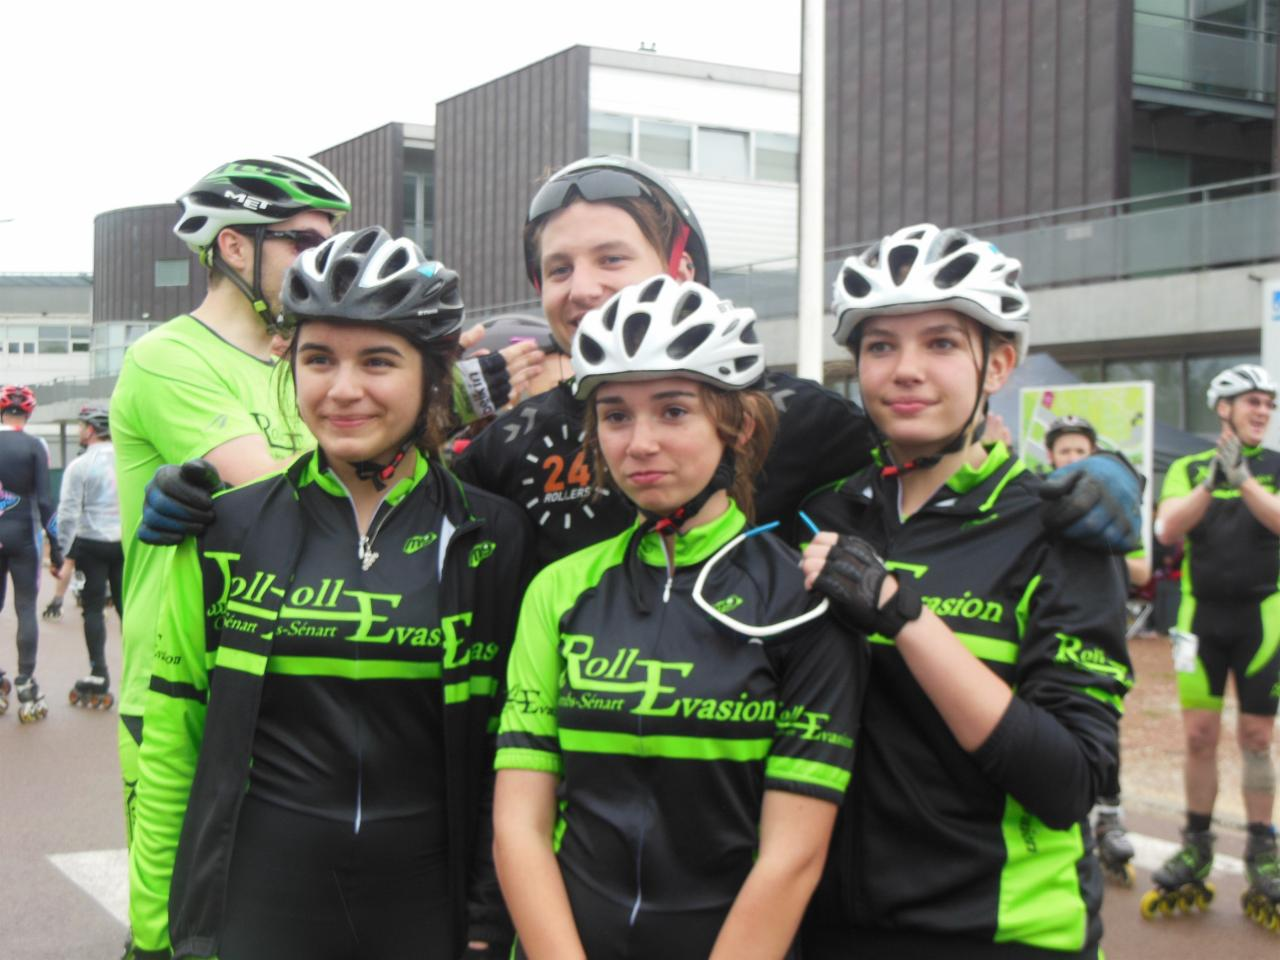 RollEvasion - 6hTroyes 2016 - 45